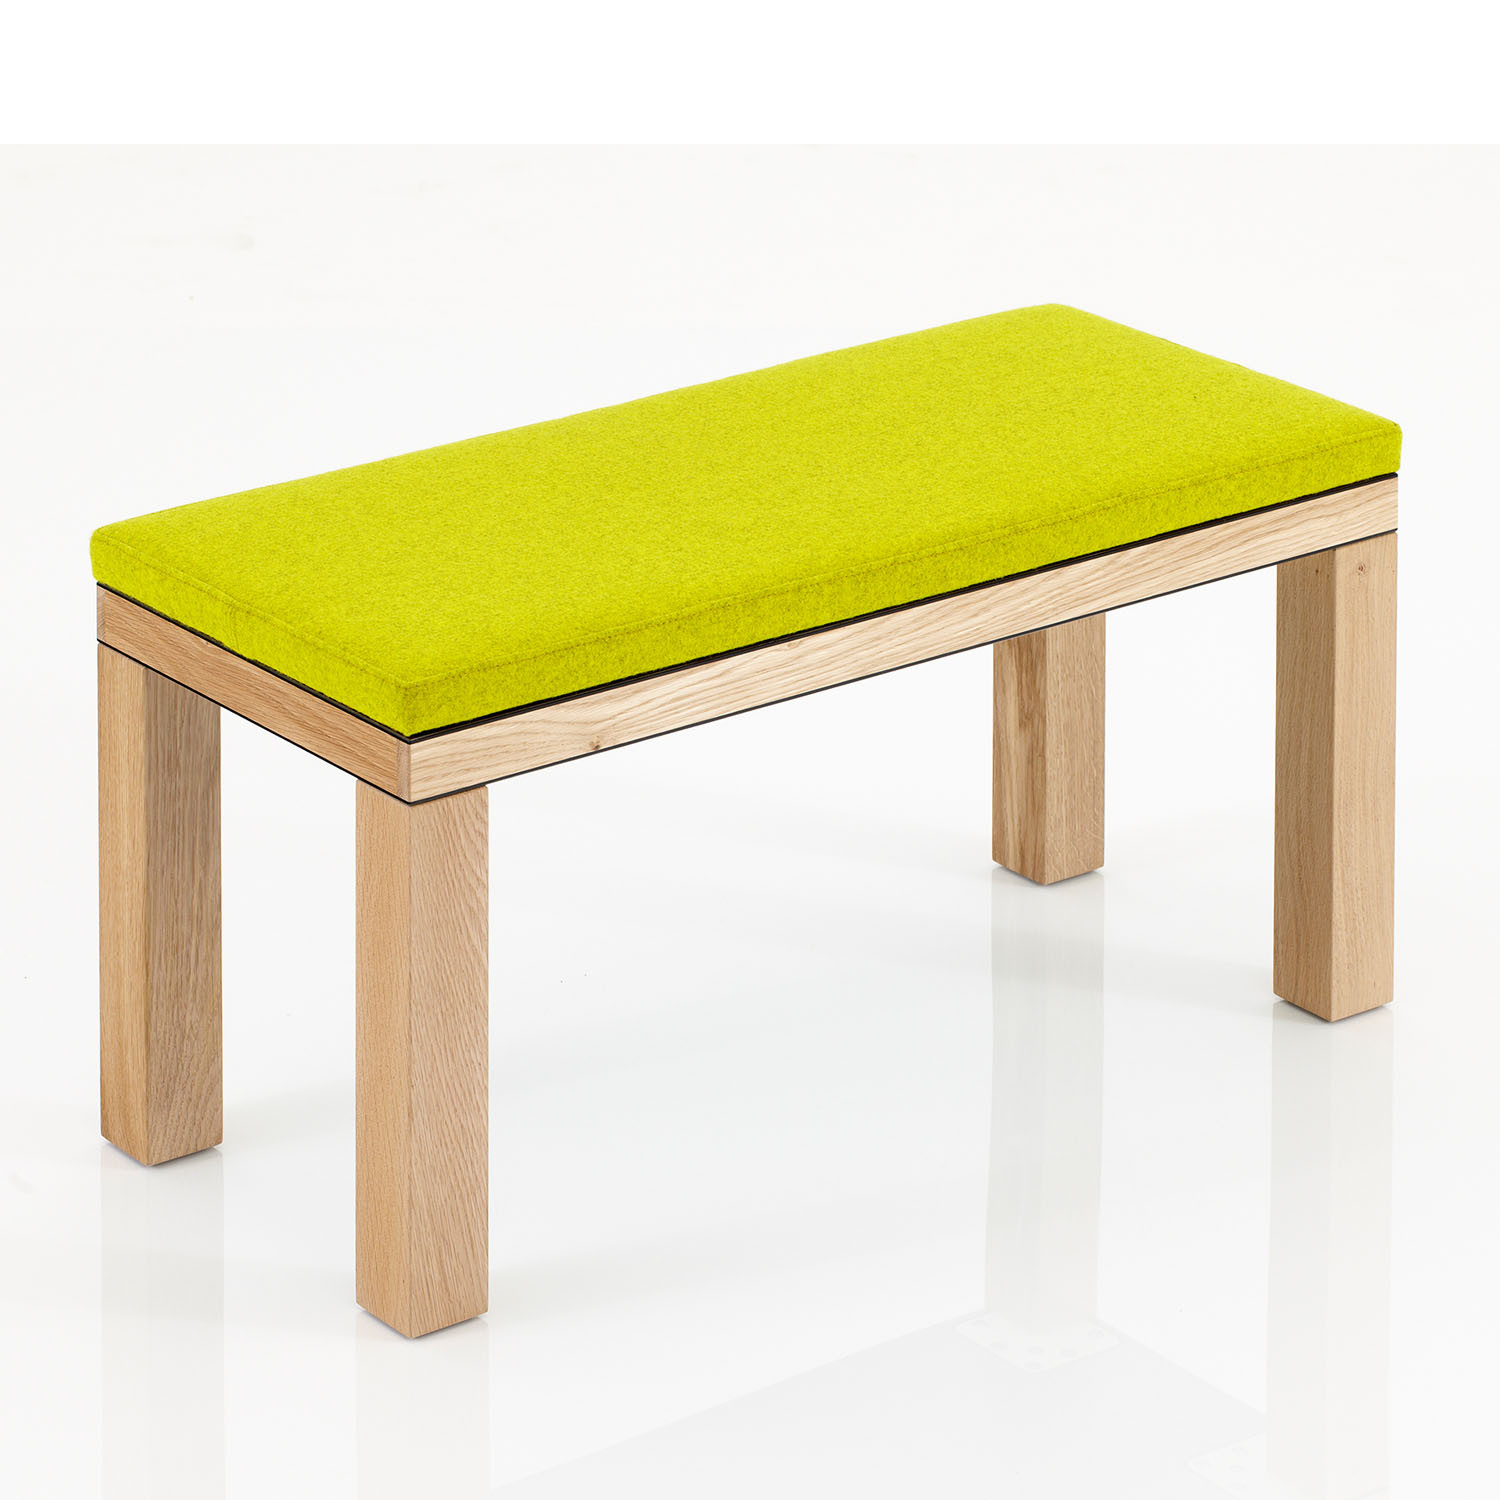 Bosa Bench Seating by James Burleigh